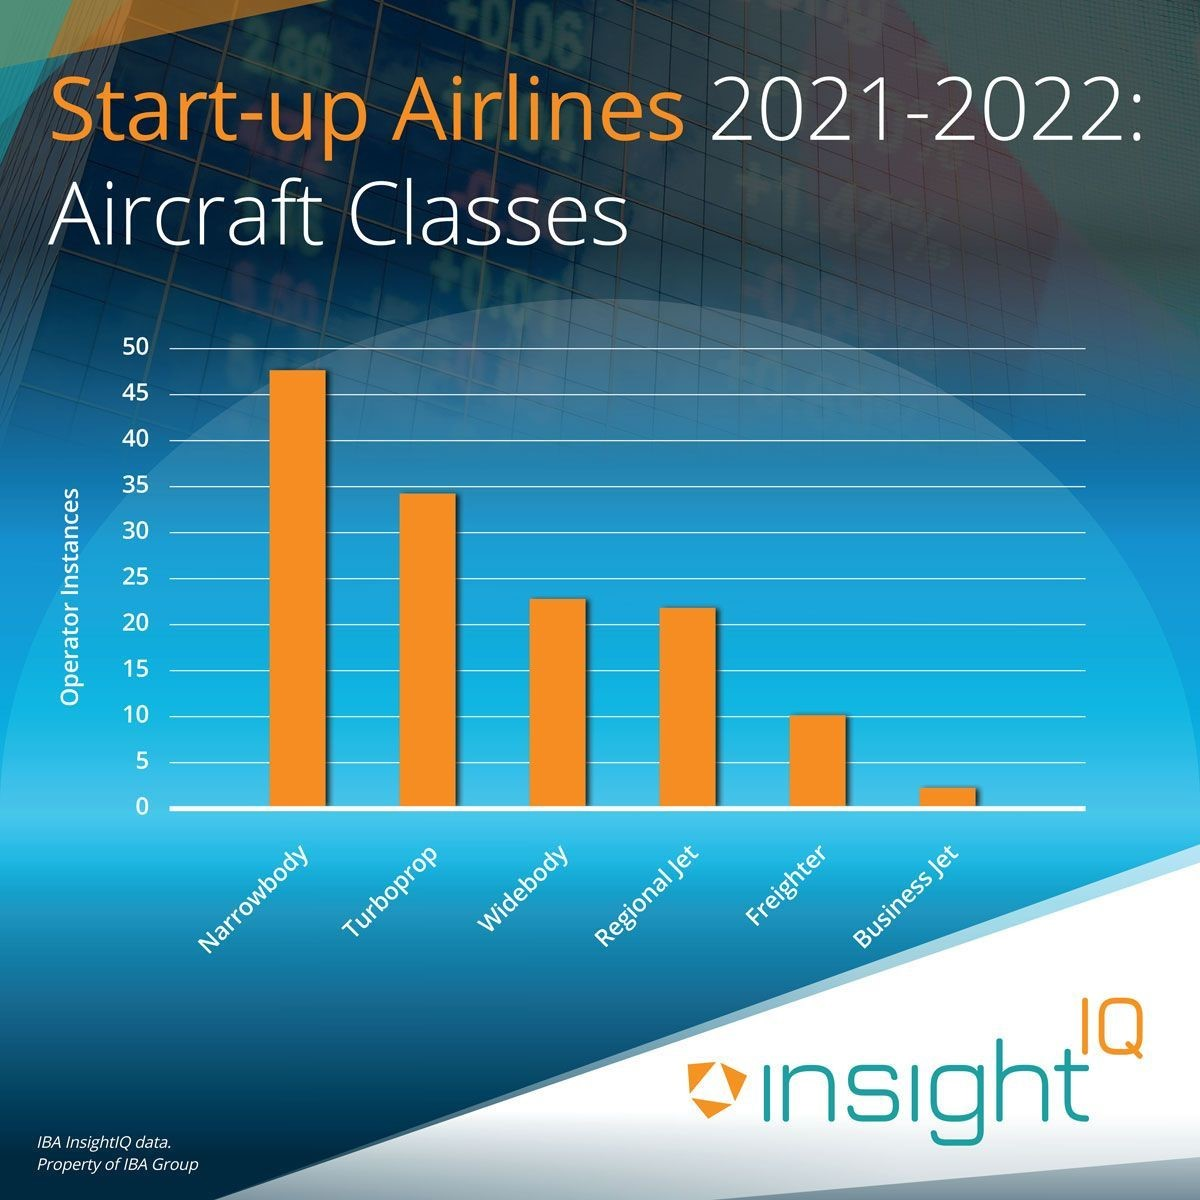 Start-up Airlines 2021-2022: Aircraft Classes